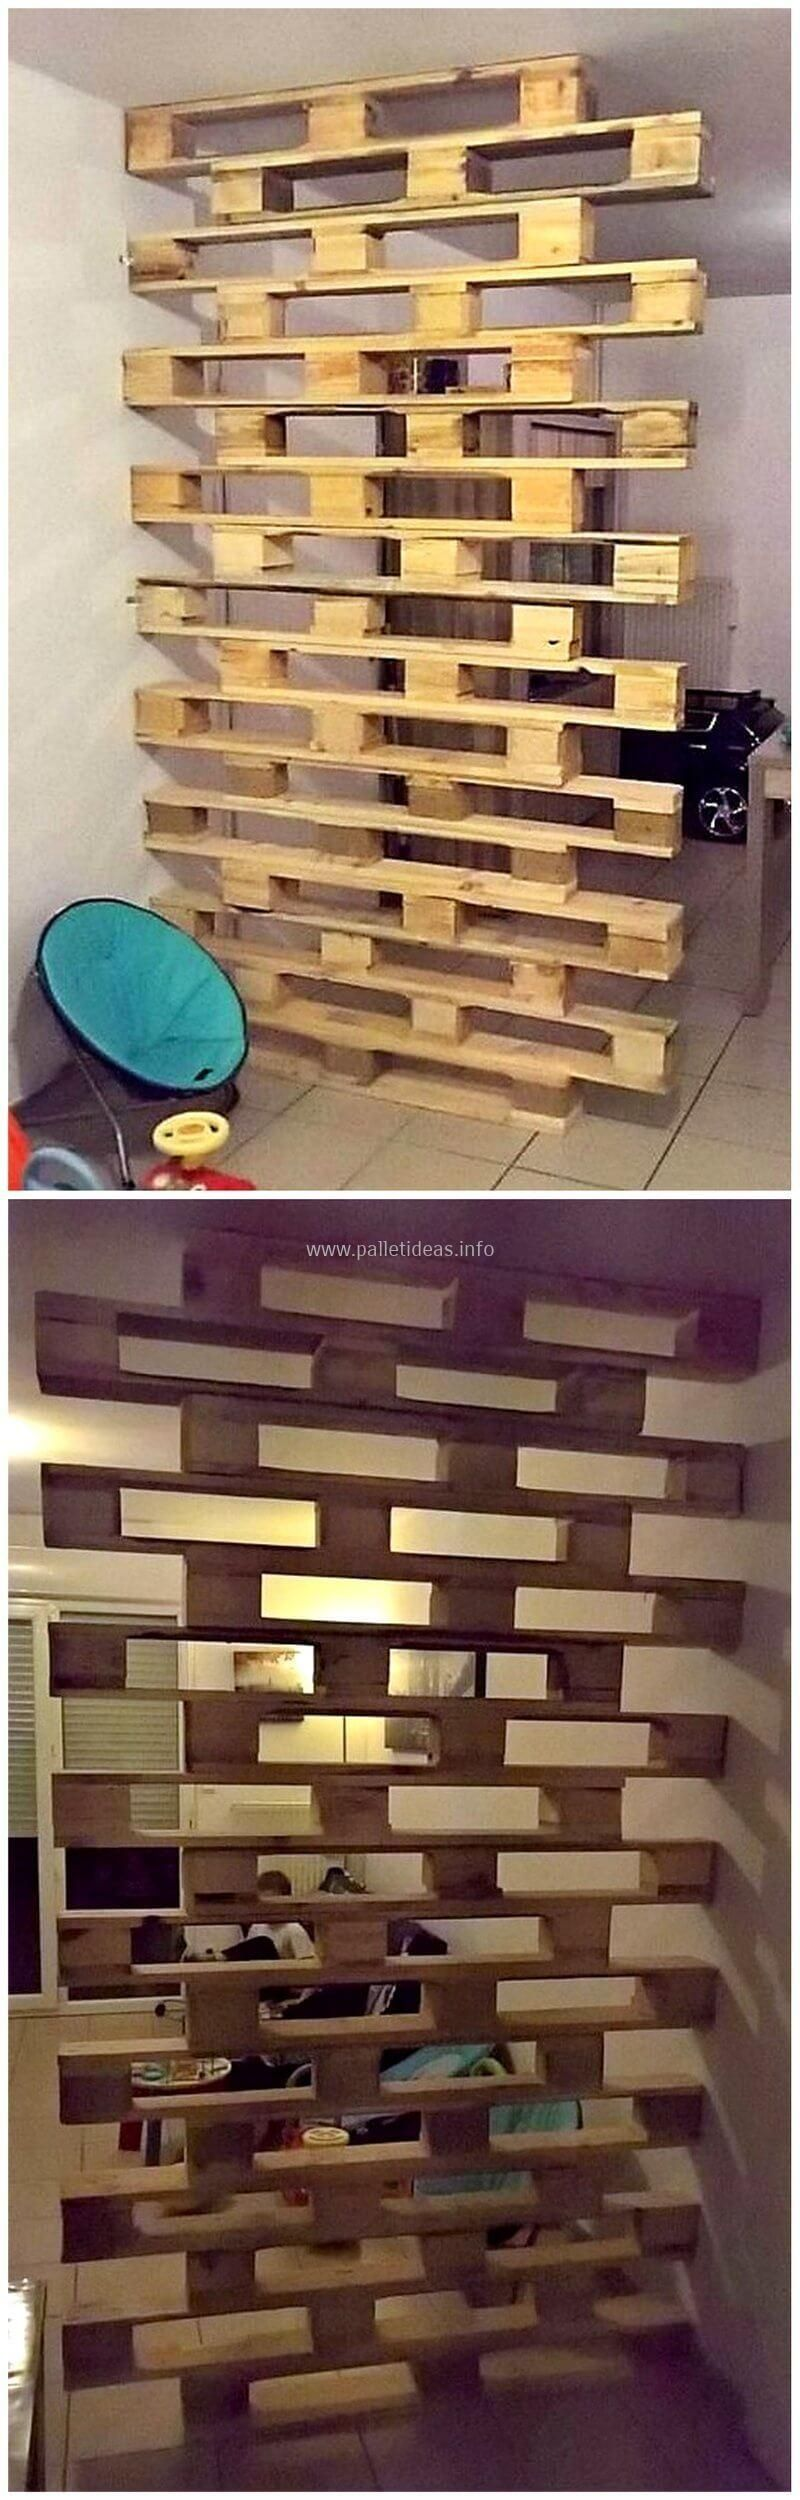 This Wood Pallet Space Divider Plan Is Crafted For Your Ease If You Have A Large Room But You Yearn To Div Raumteiler Ideen Diy Raumteiler Ideen Raumideen Diy